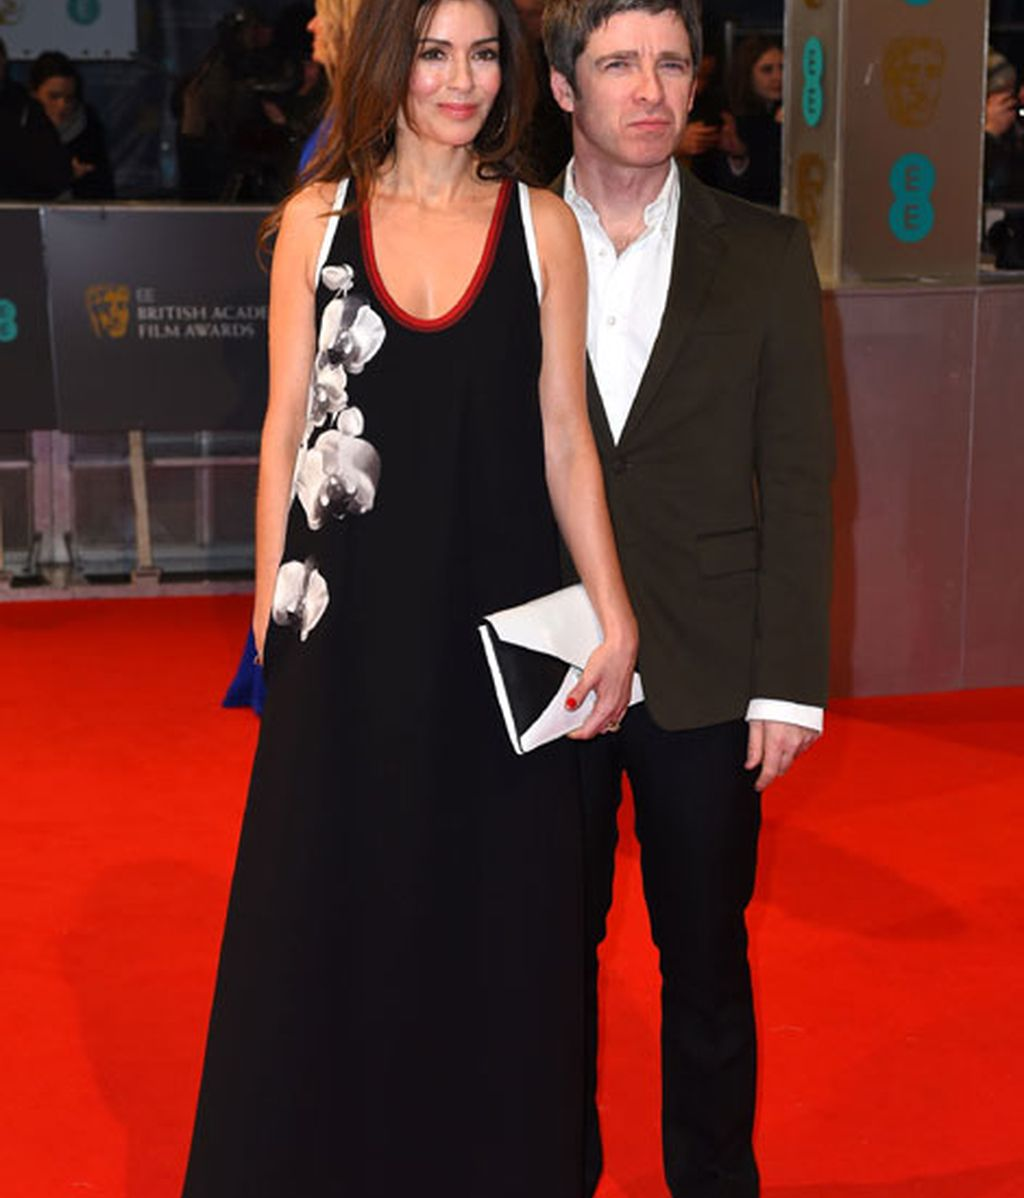 Sara MacDonald y Noel Gallagher